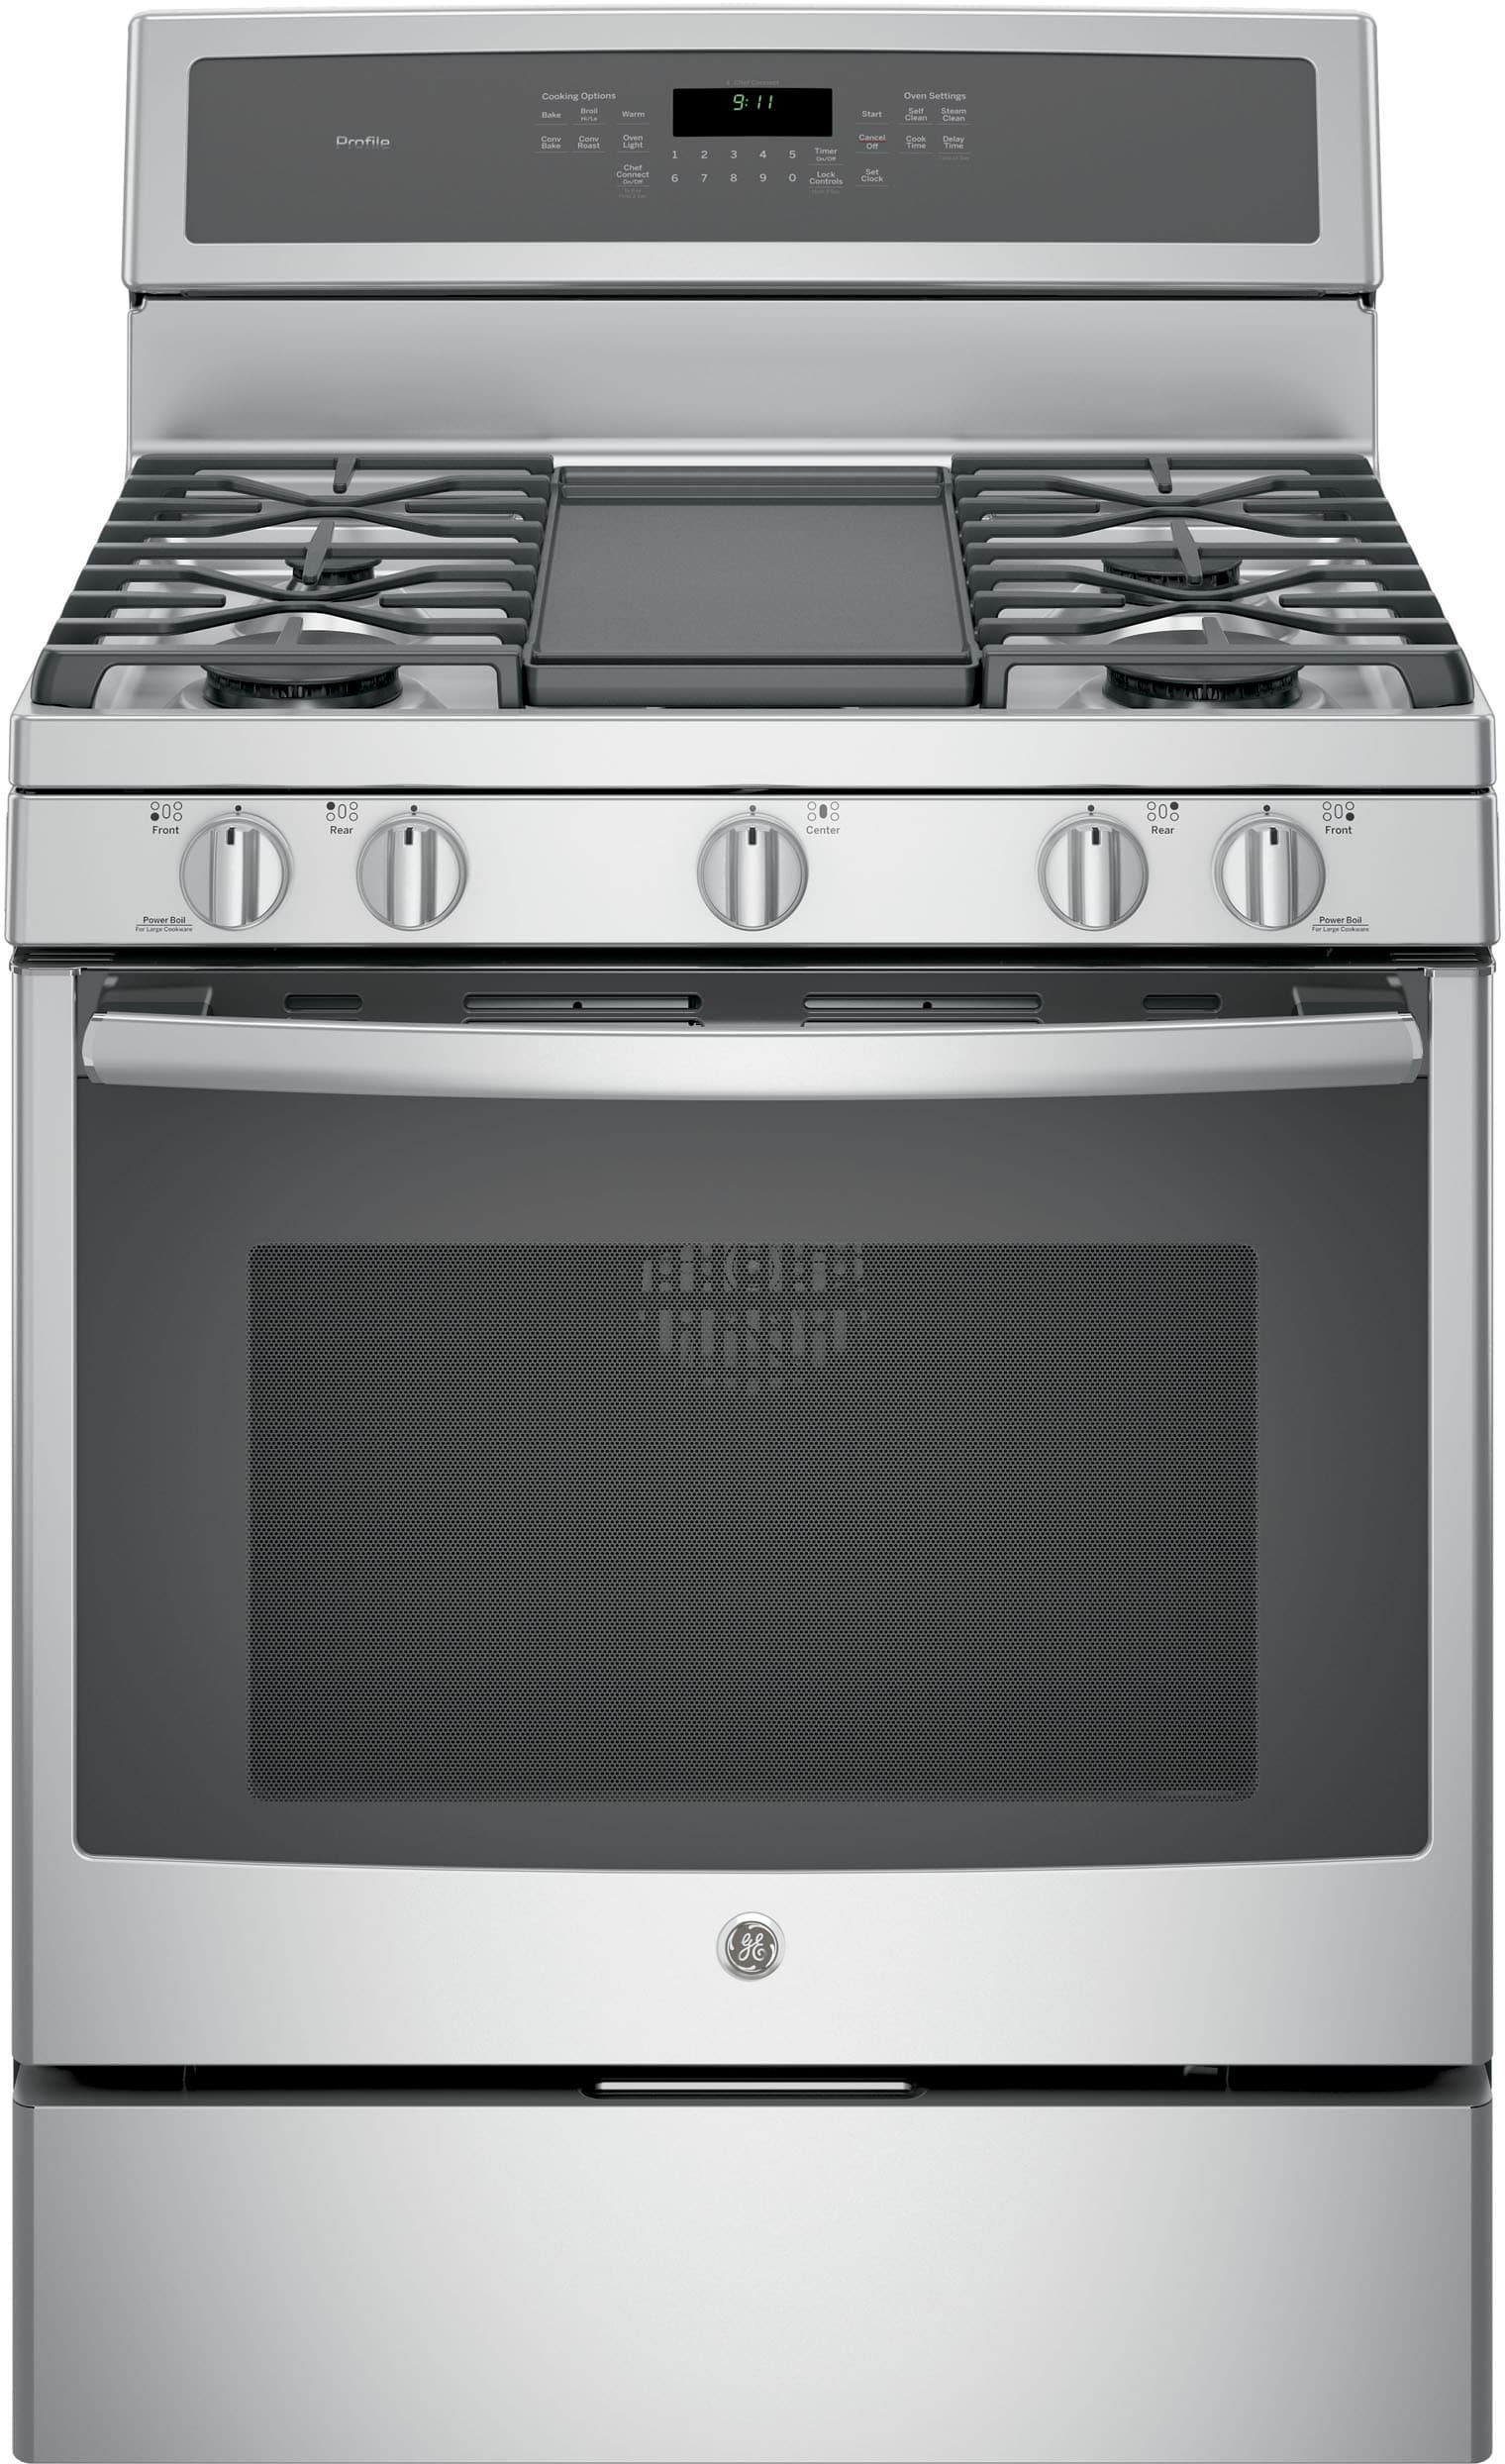 Stove With Griddle ~ Ge pgb inch freestanding gas range with chef connect